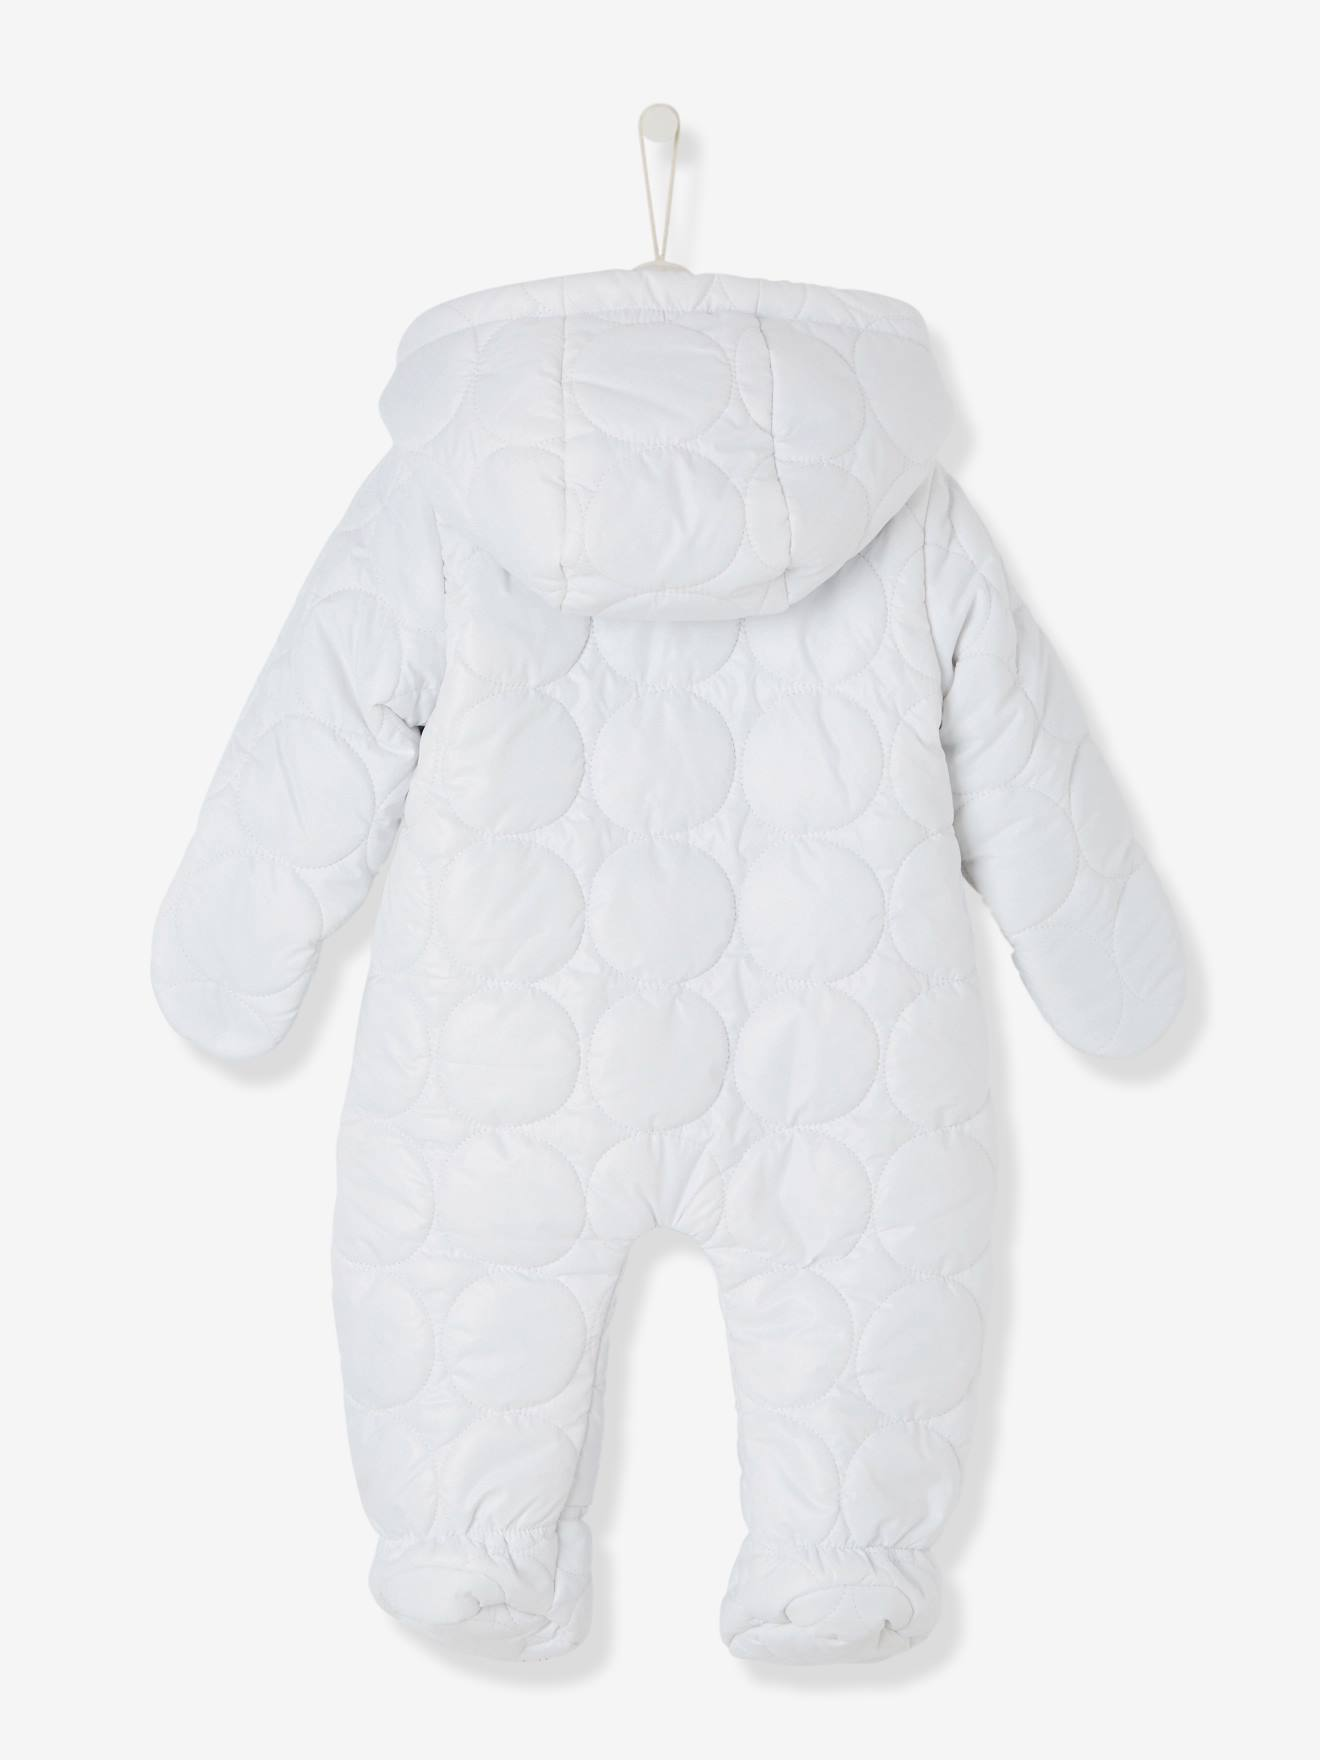 763a2cf10317 BabyPadded All-in-One with Fleece Lining